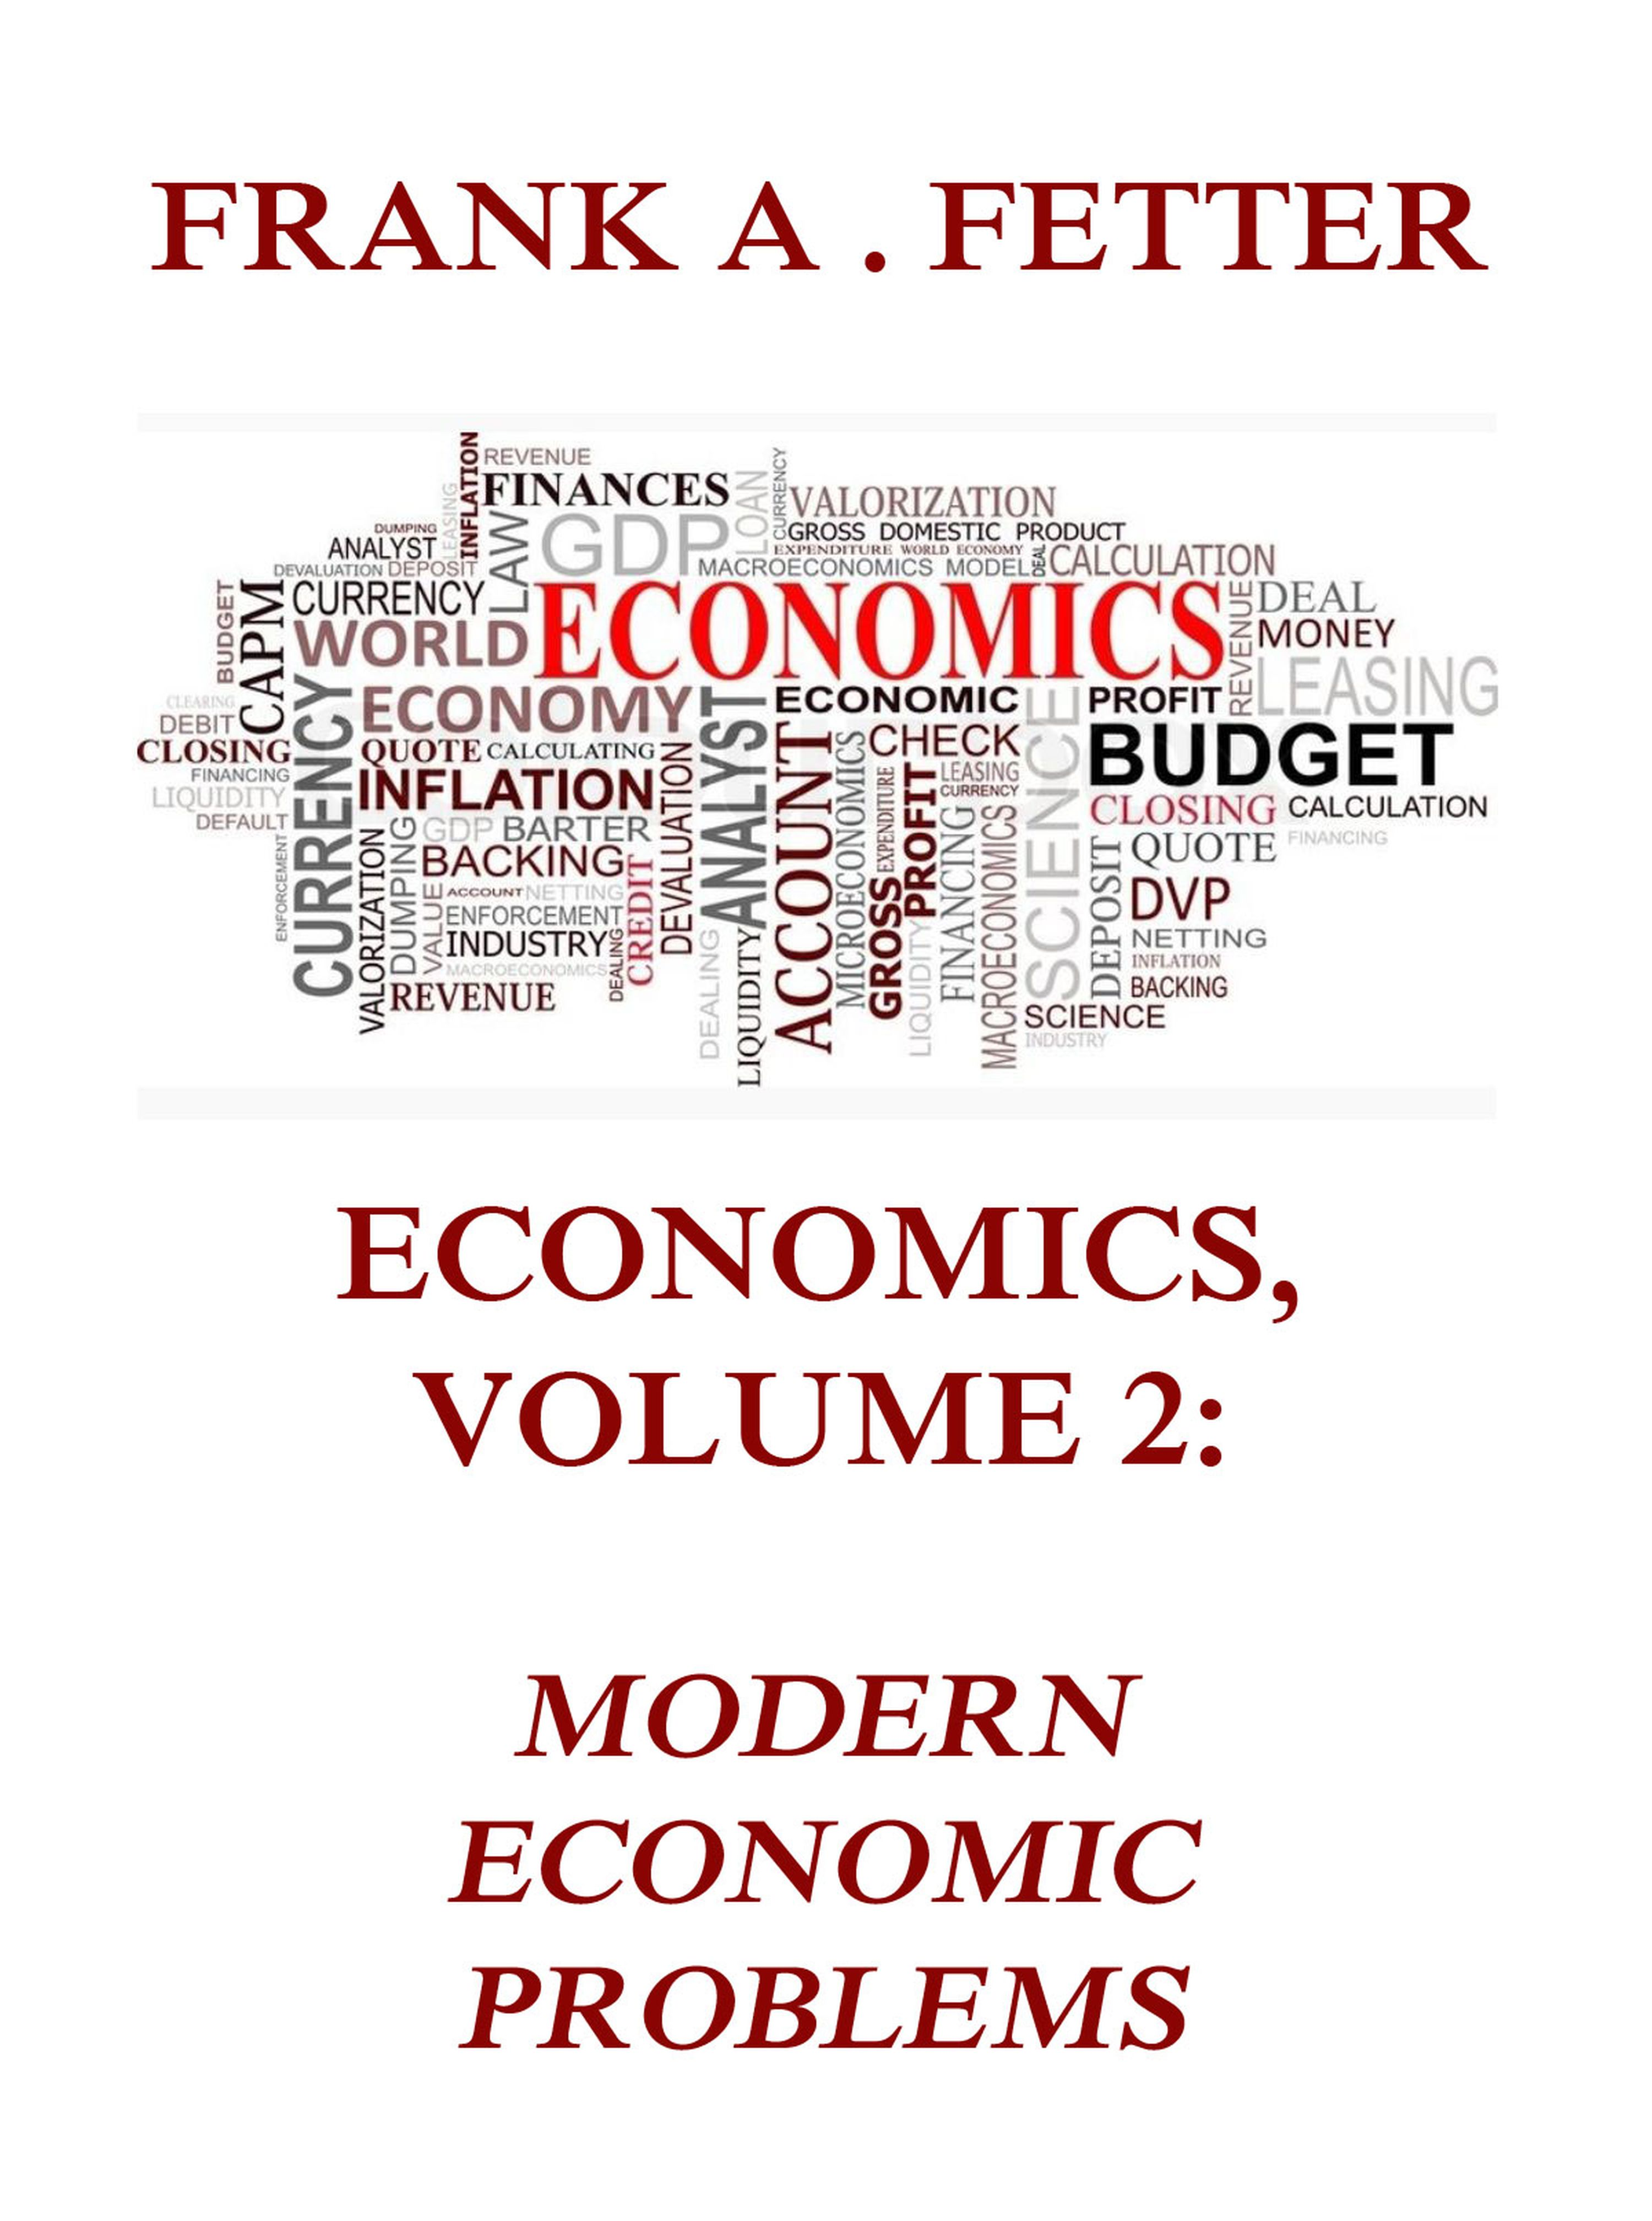 Frank A. Fetter Economics, Volume 2: Modern Economic Problems h polano selections from the talmud being specimens of the contents of that ancient book its commentaries teachings poetry and legends also brief sketches of the men who made and commented upon it